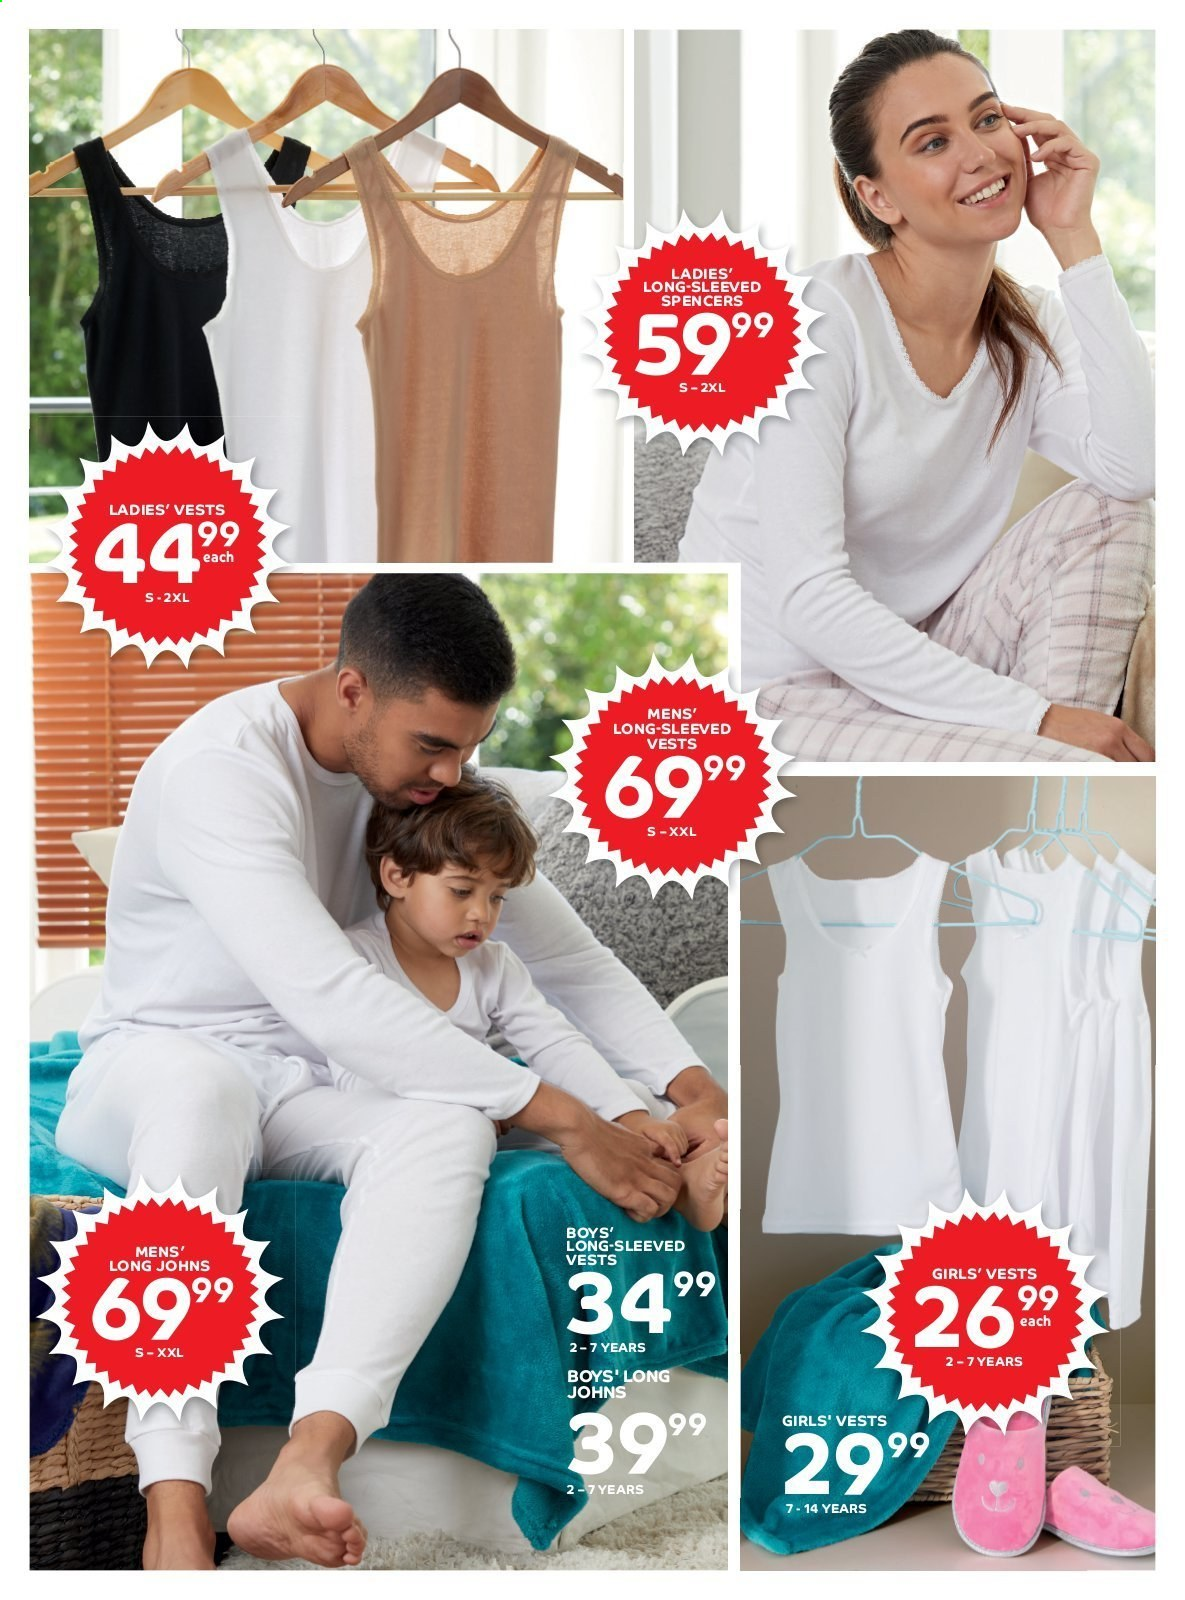 PEP Stores catalogue  - 04.26.2019 - 05.30.2019. Page 4.